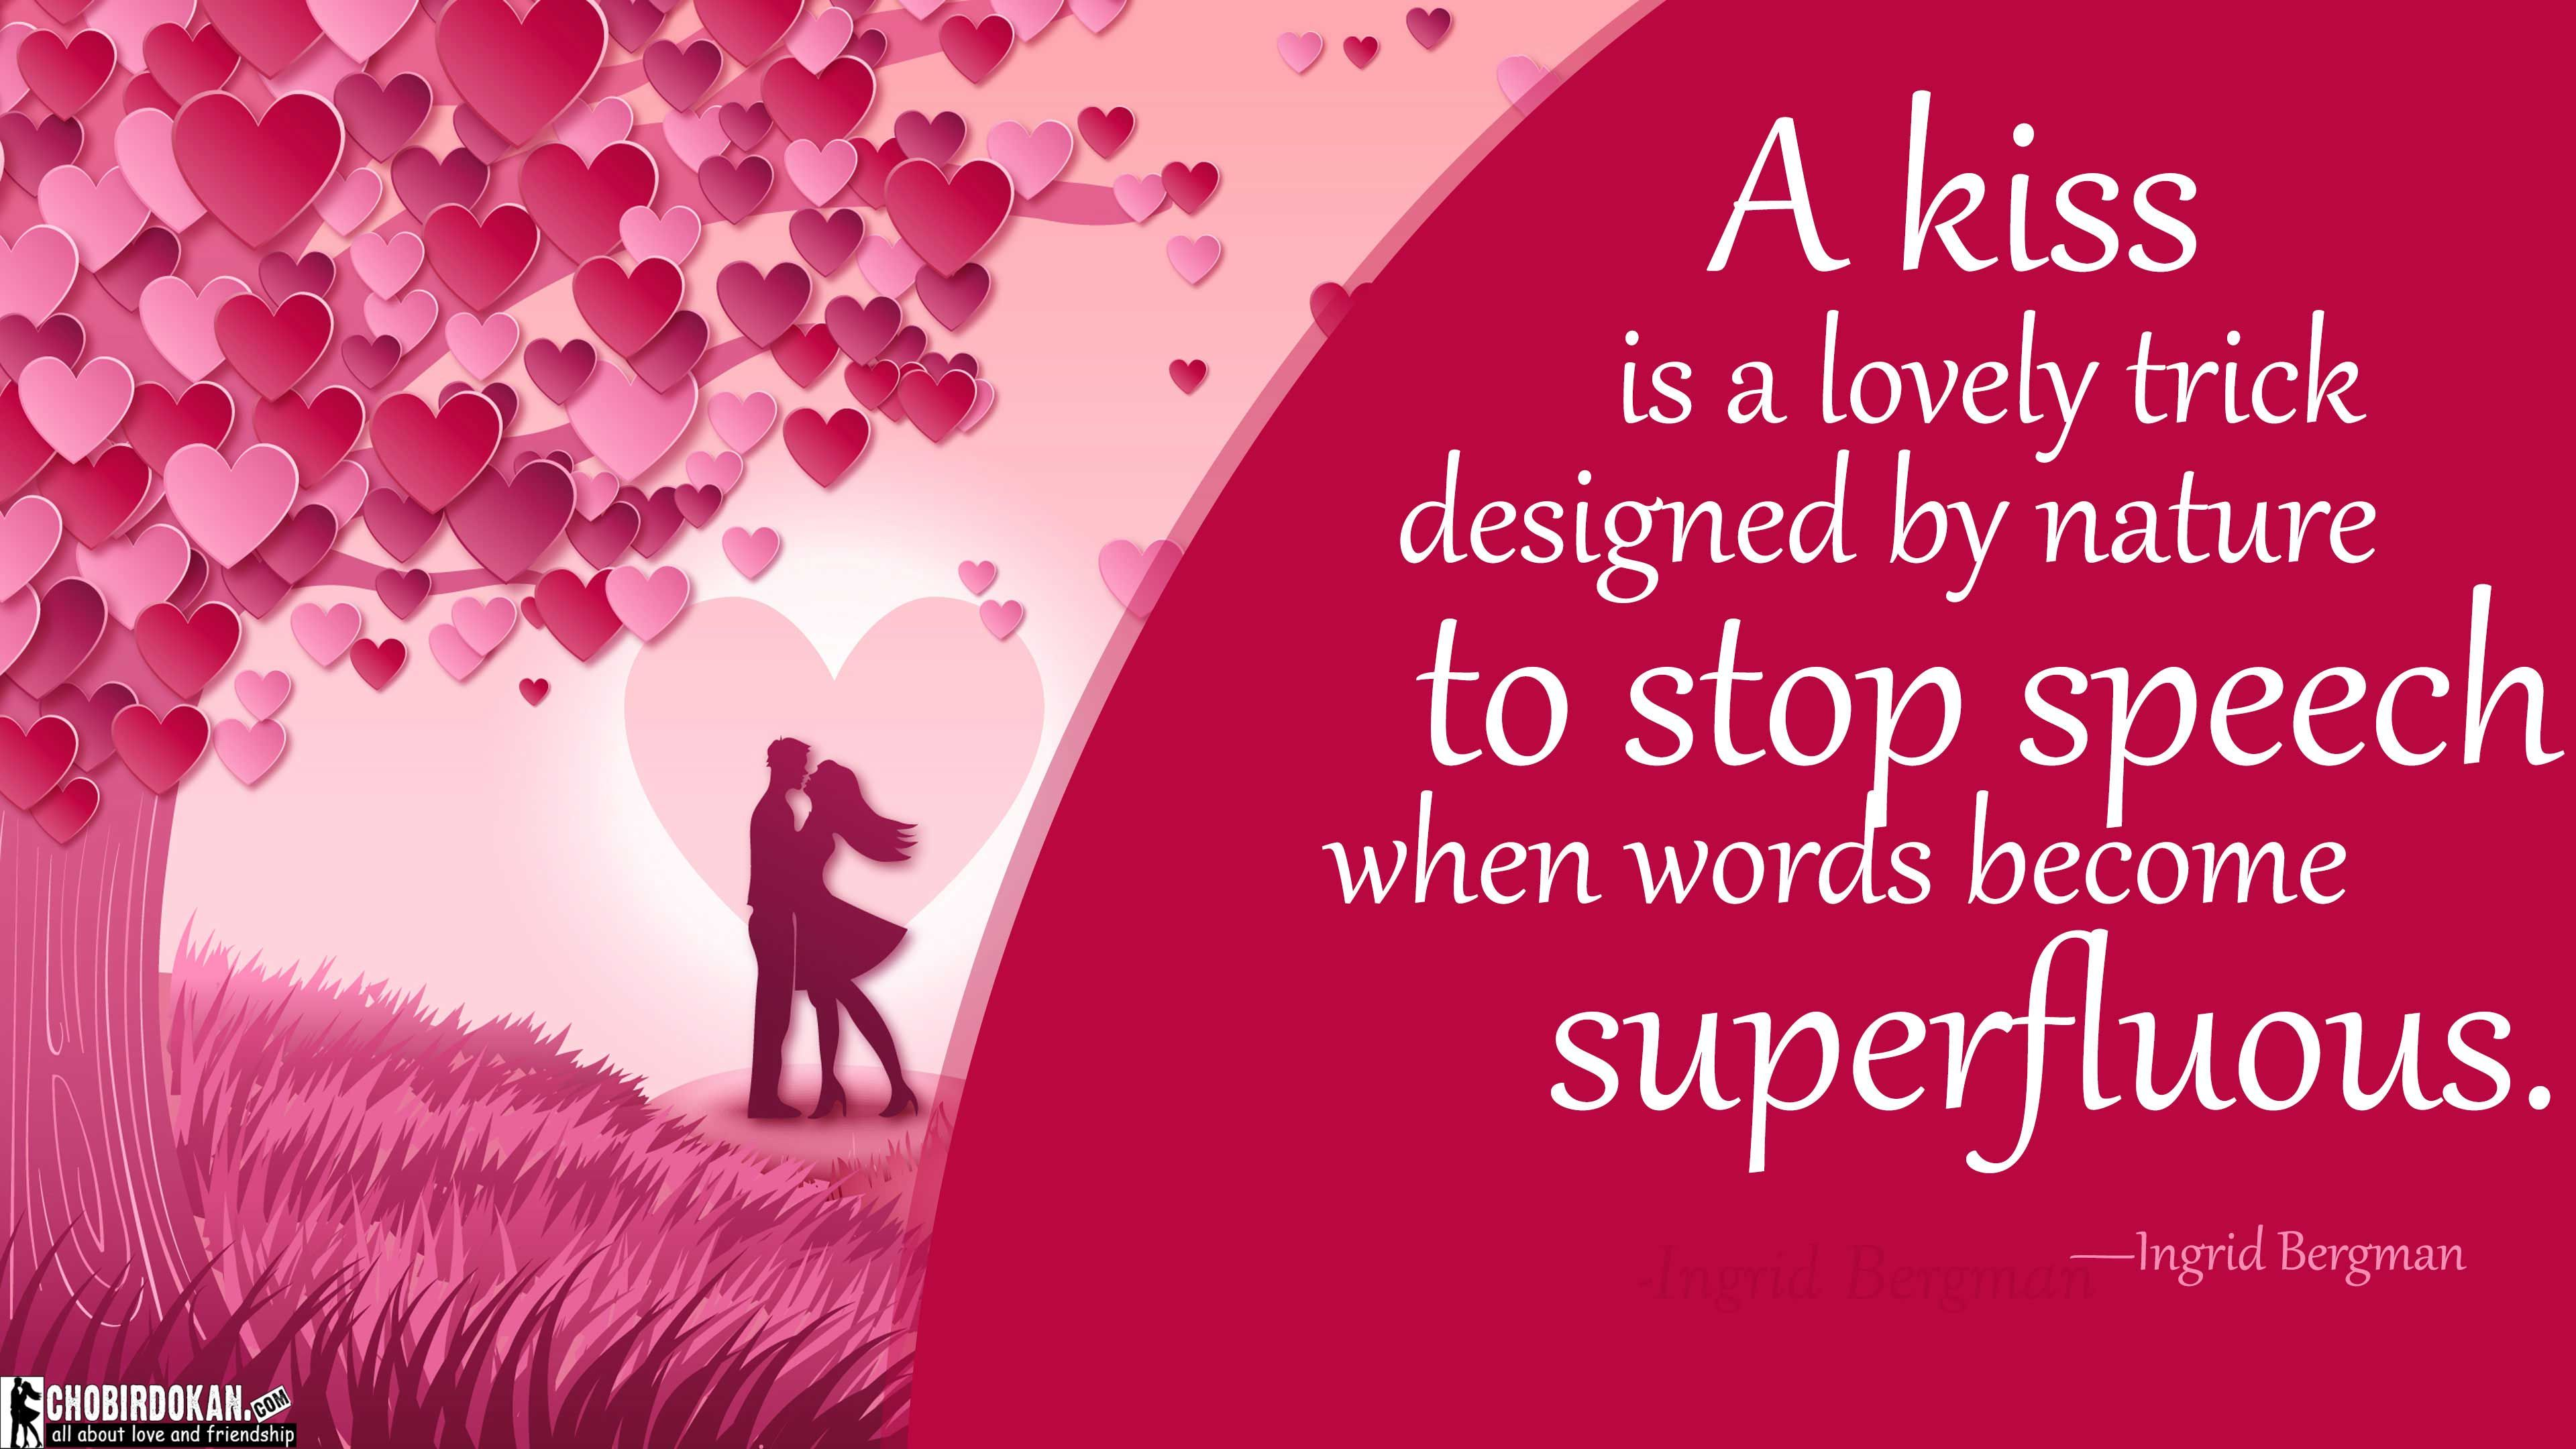 Cute Kissing Quotes Images For Herhim Best Love Kiss Quotes Me